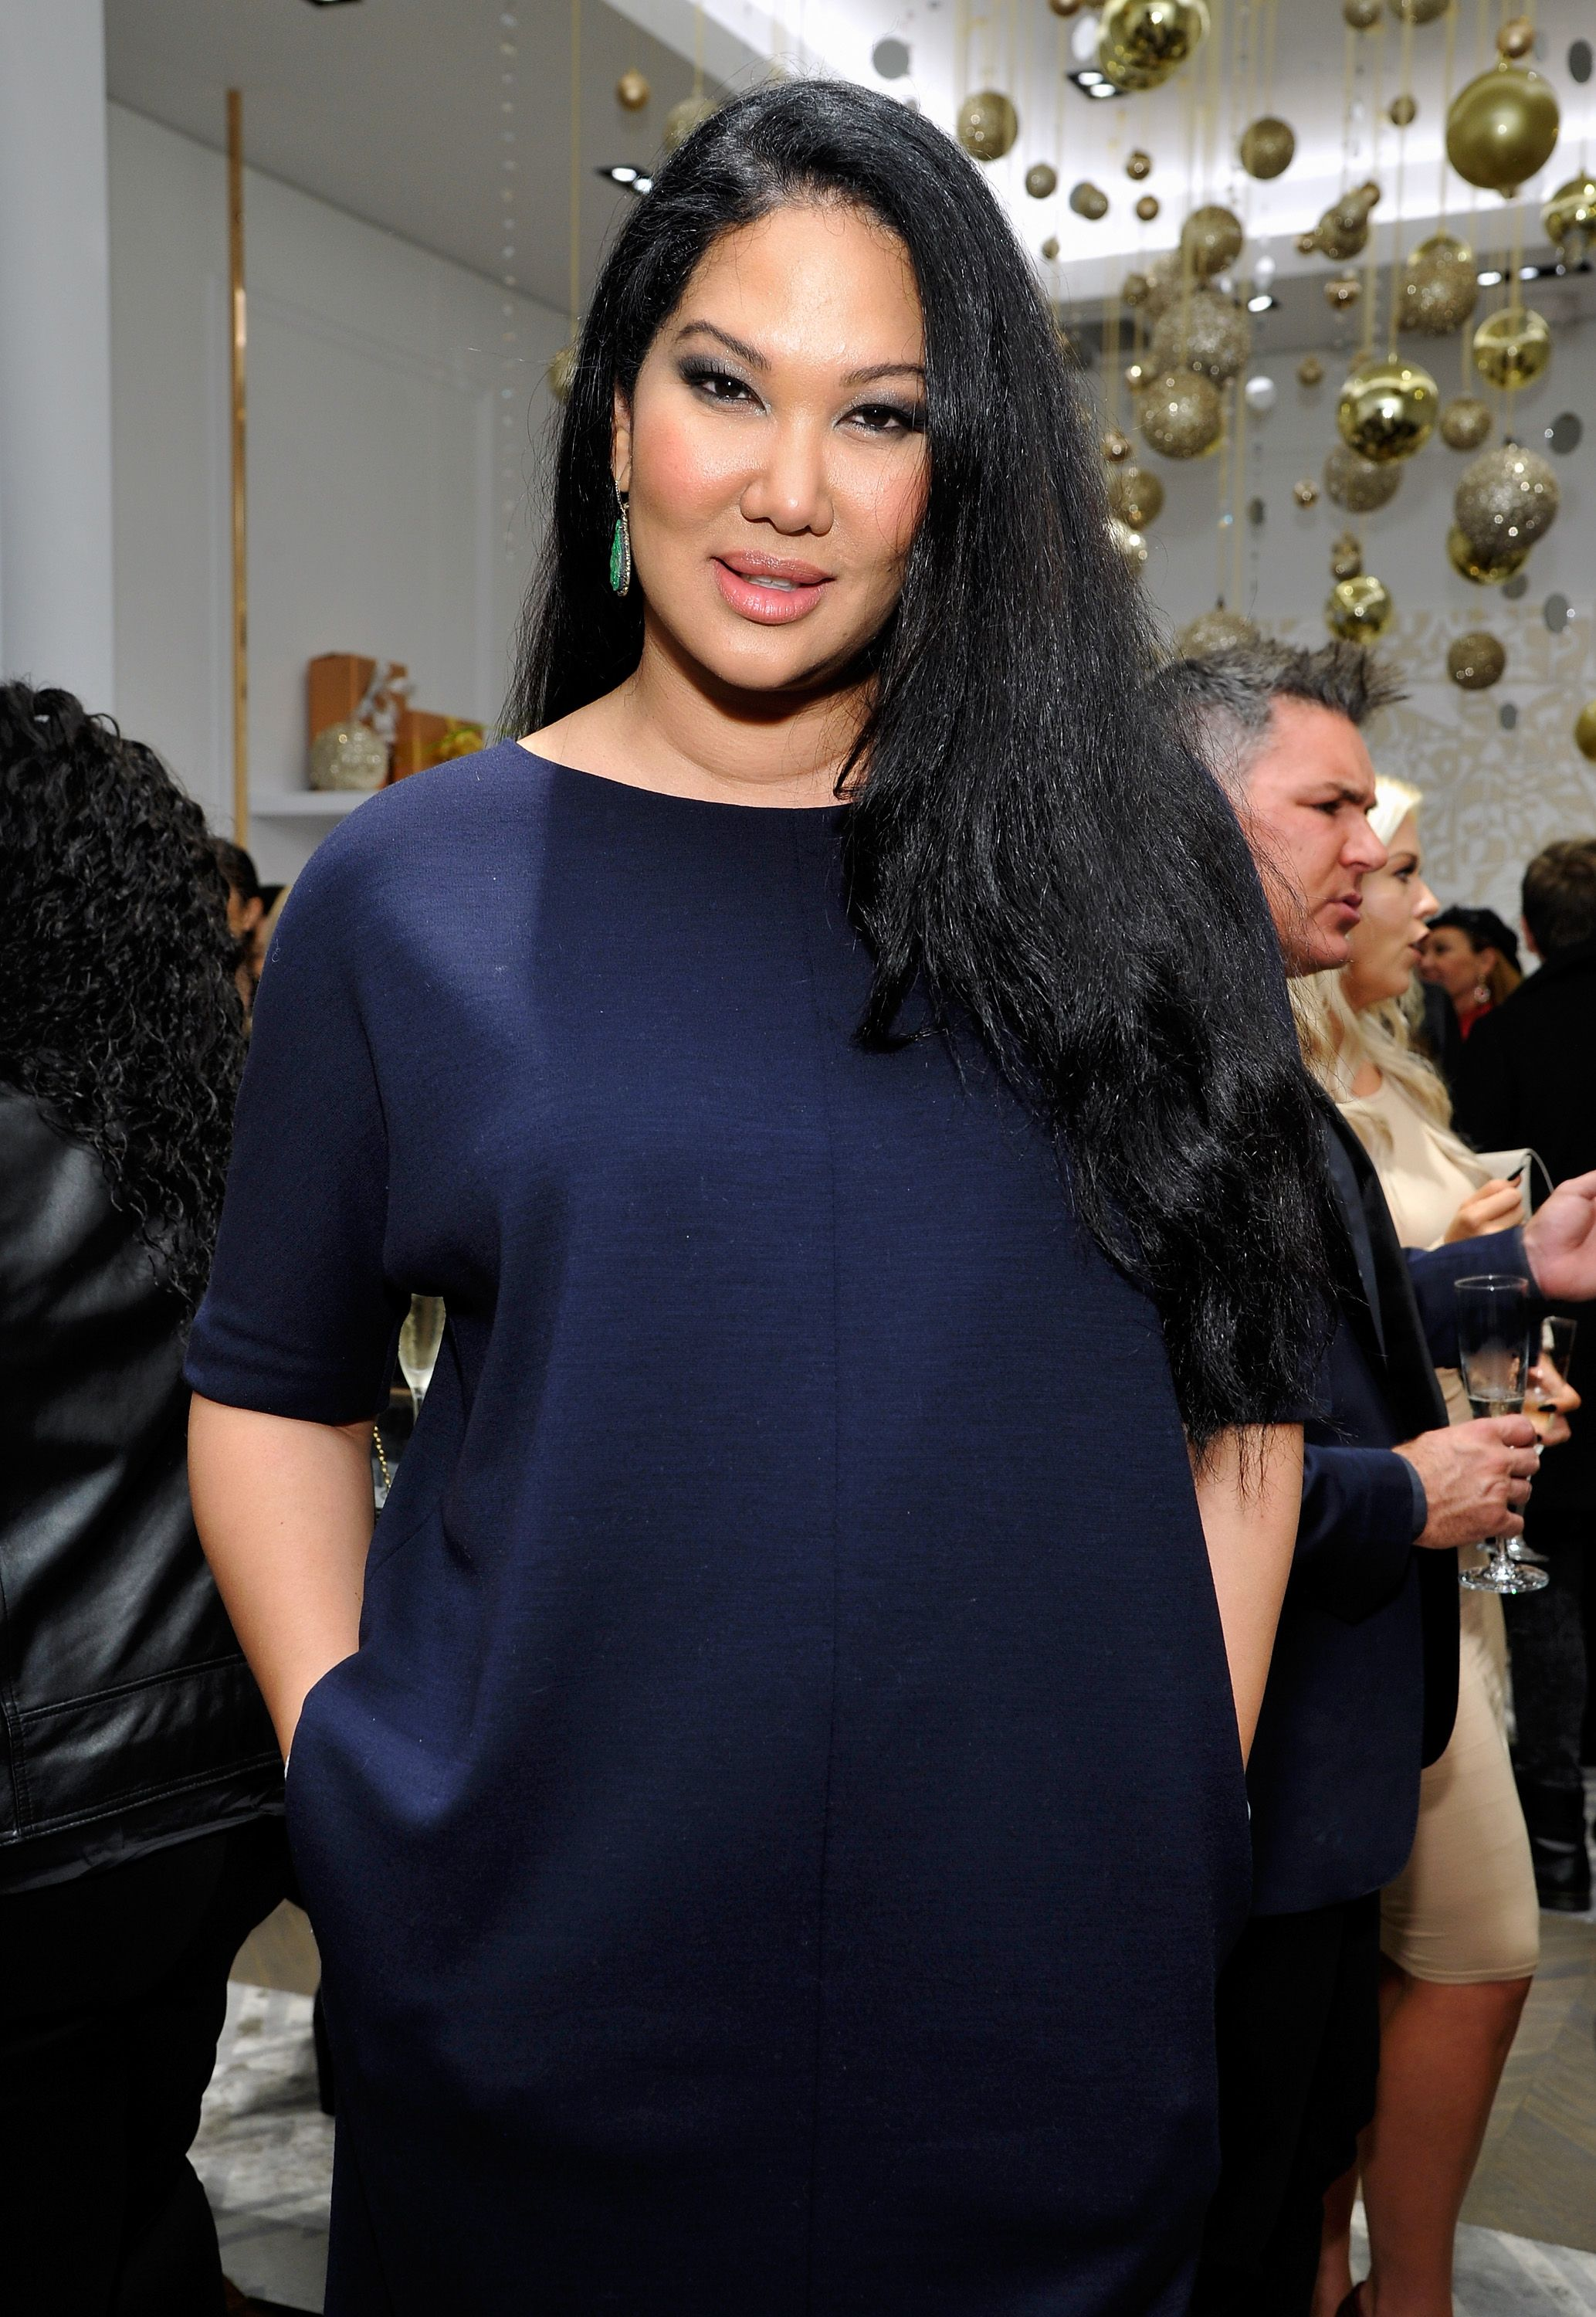 Kimora Lee Simmons at the opening of Kimora Lee Simmons' Beverly Hills boutique with W Magazine on December 10, 2015 | Photo: Getty Images